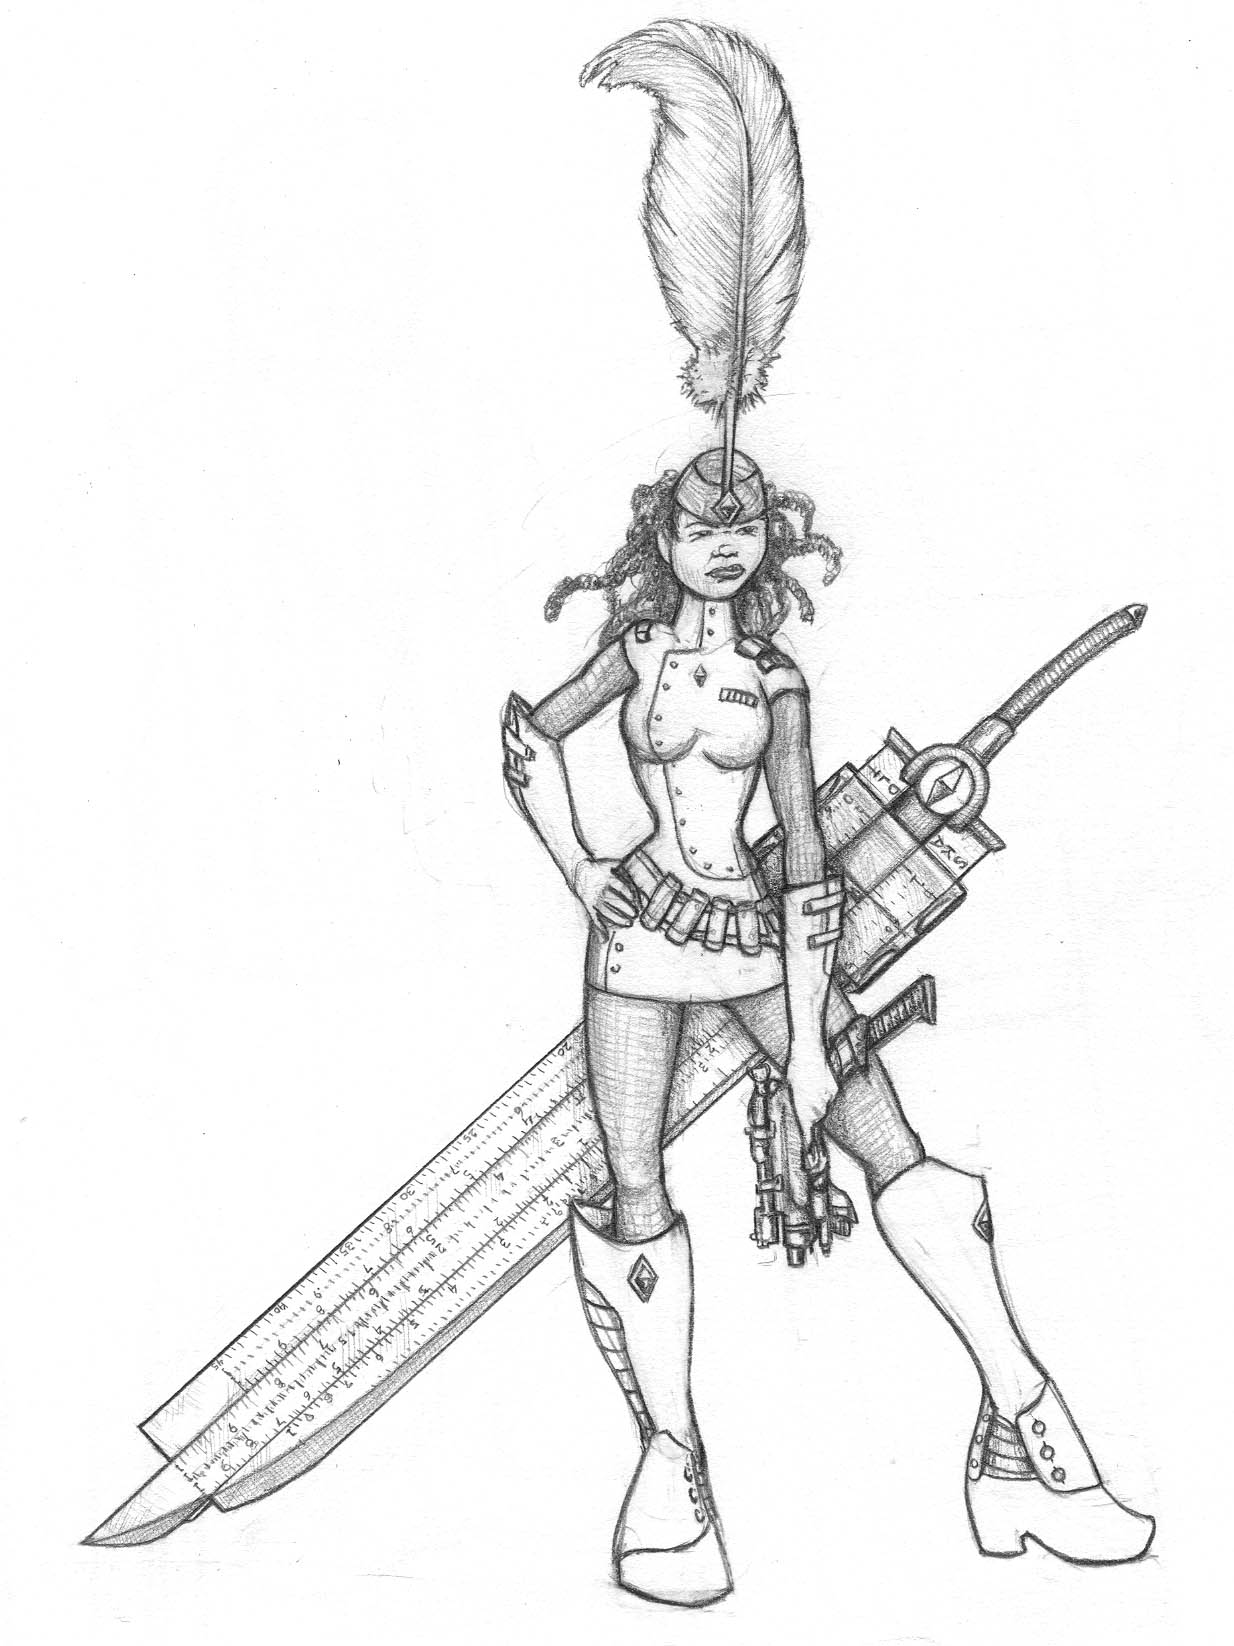 Maya pinup with a giant slide rule sword